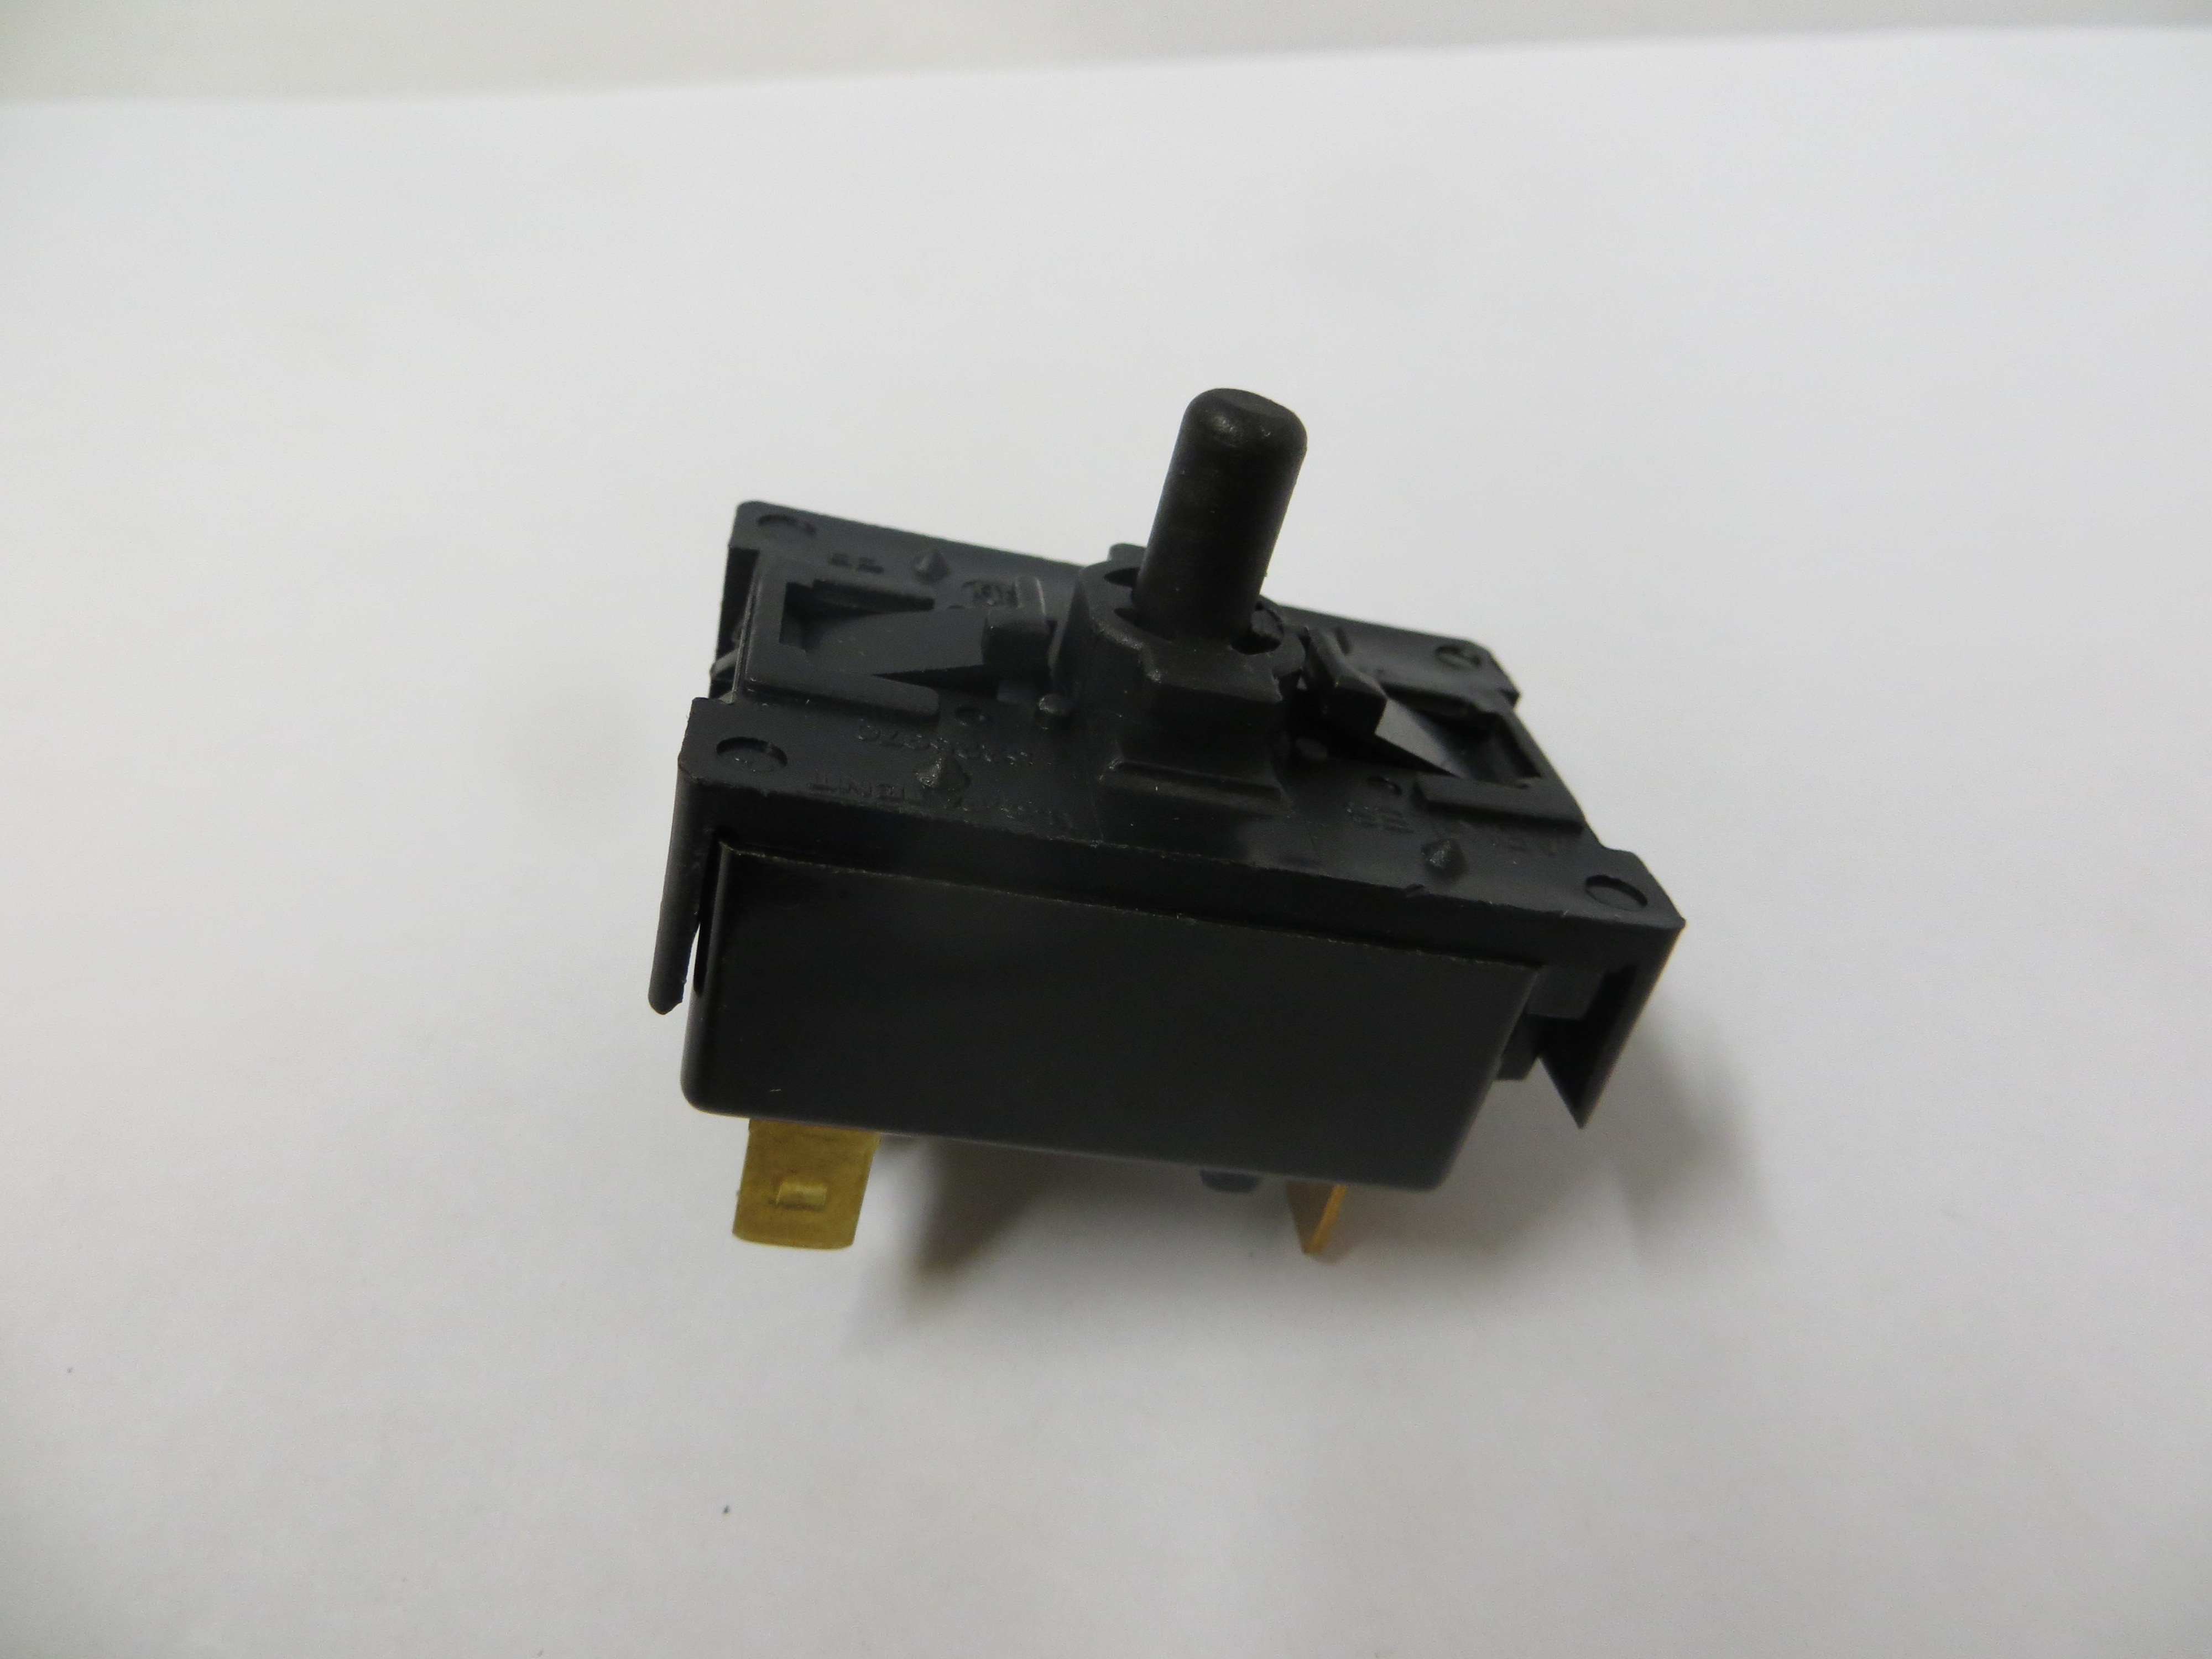 513505 - Topload 3-position Selector Switch